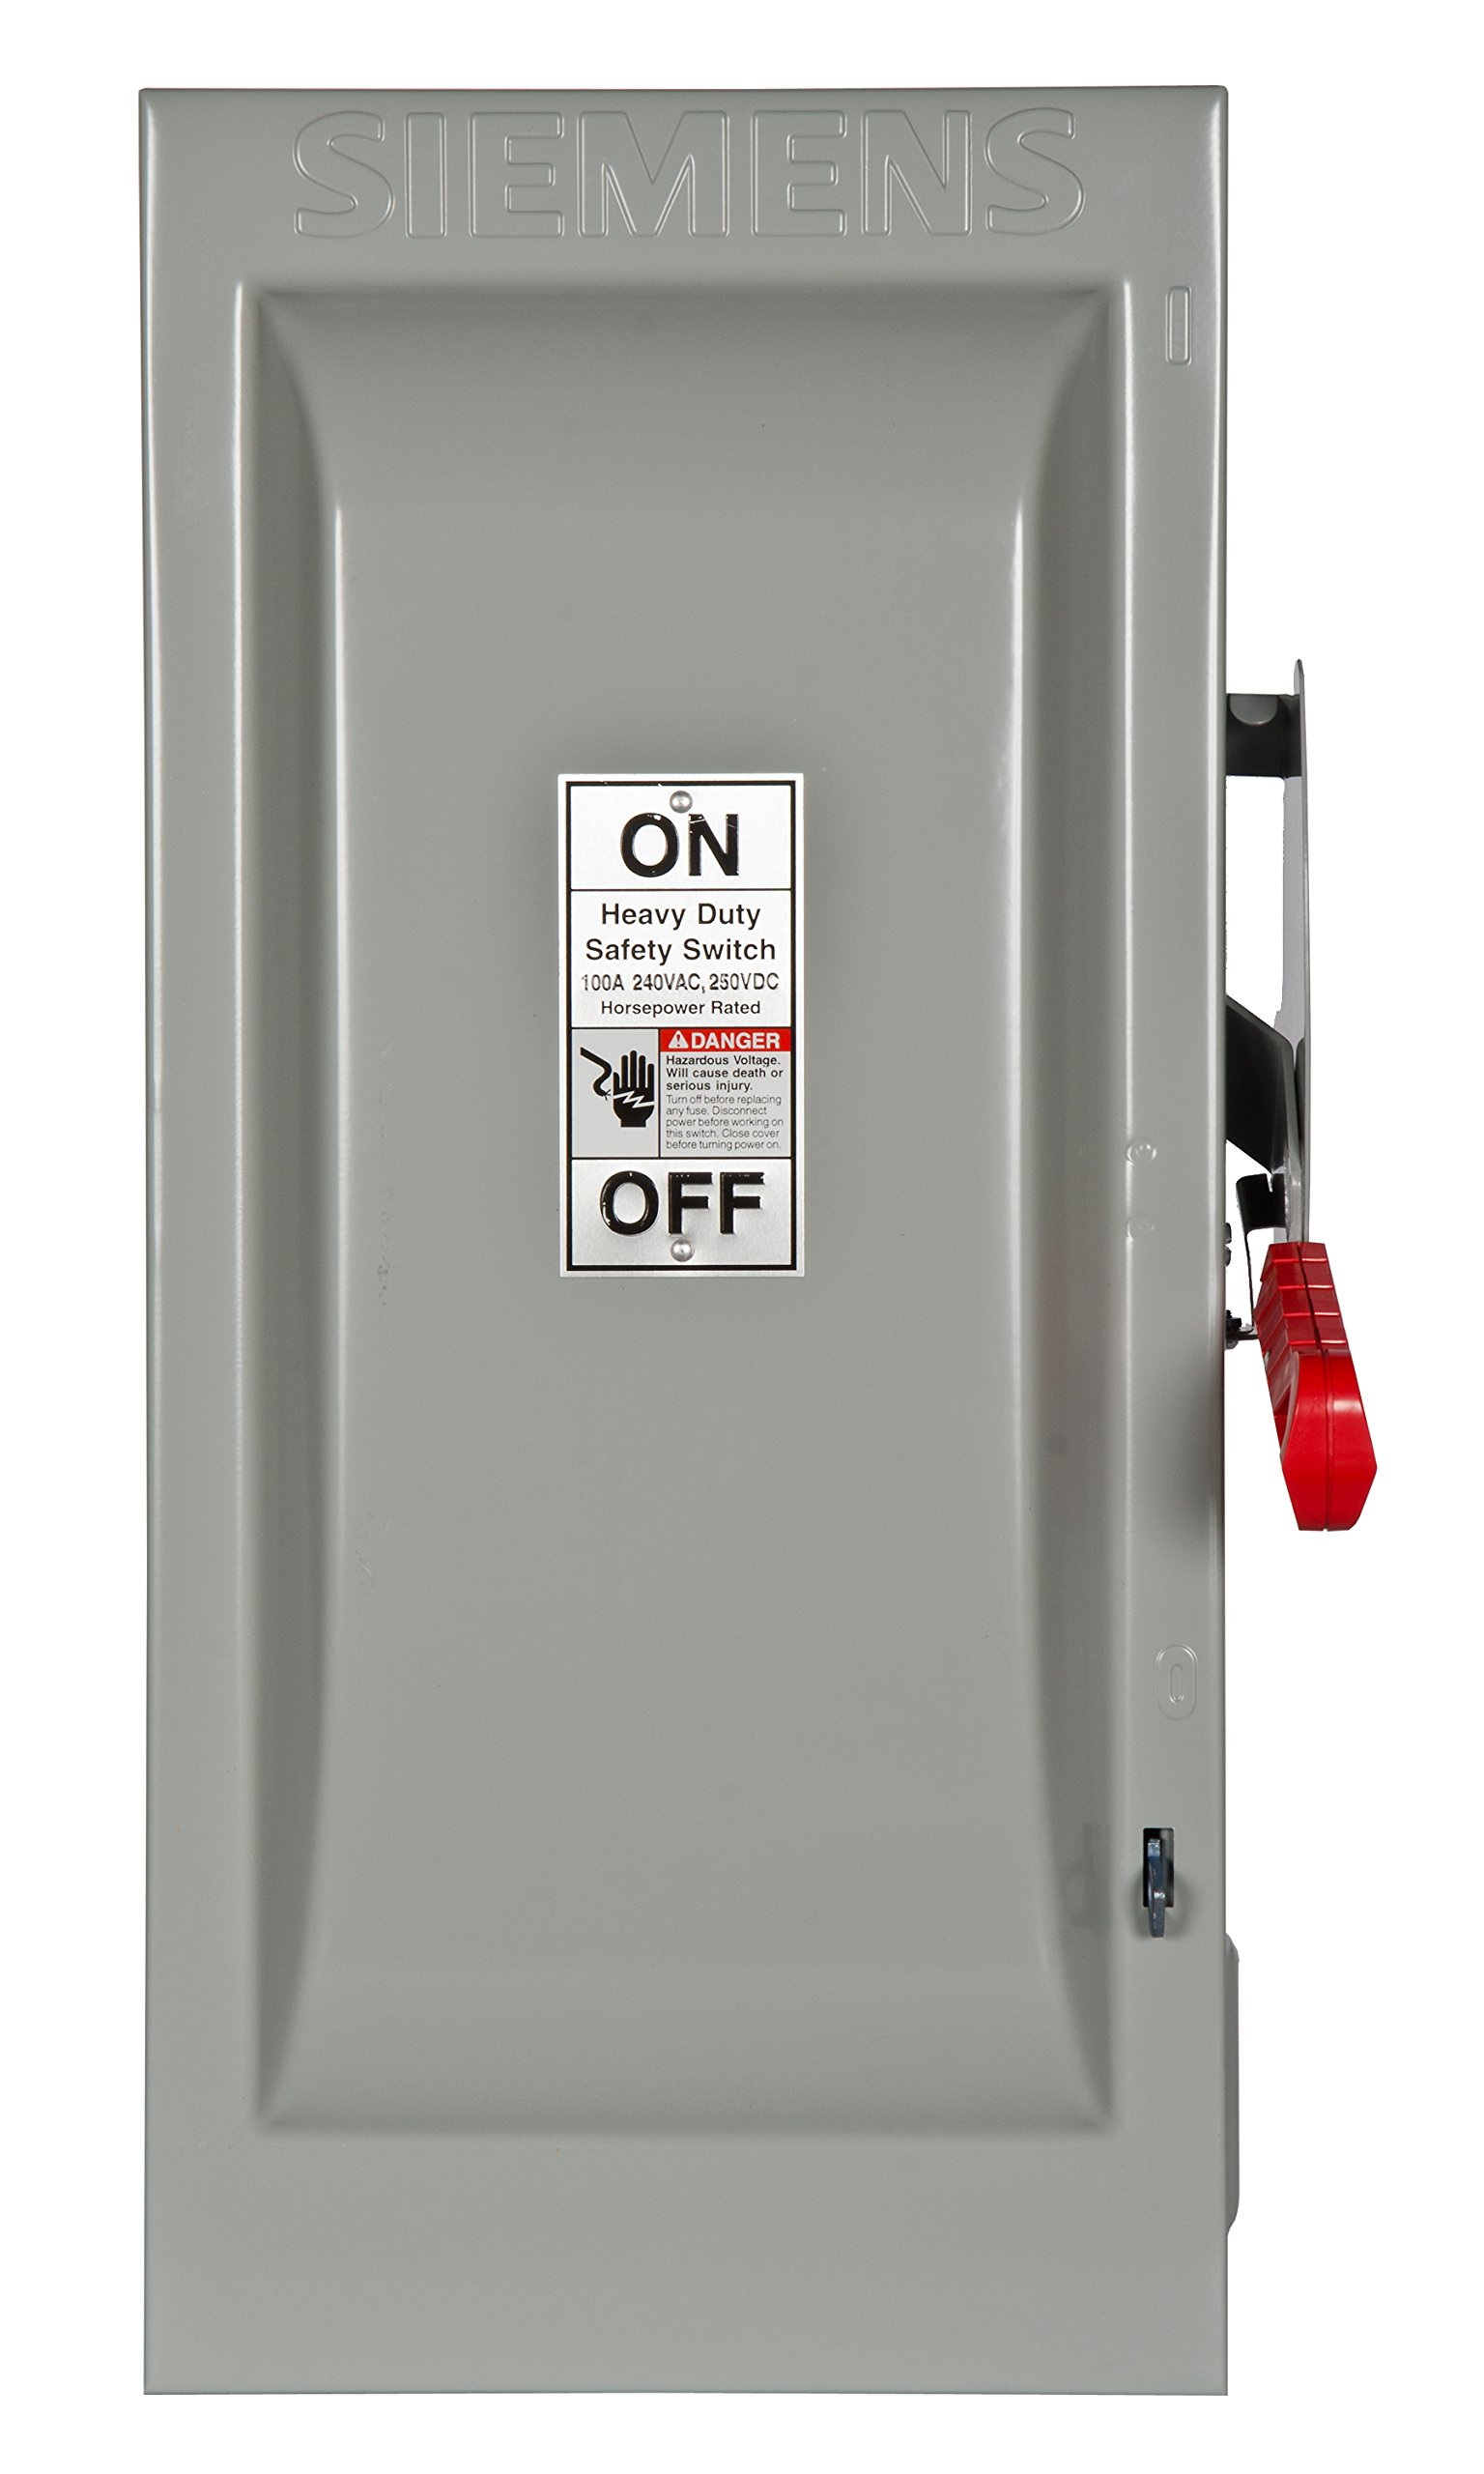 Siemens HF223N 100-Amp 2 Pole 240-volt 3 Wire Fused Heavy Duty Safety Switches